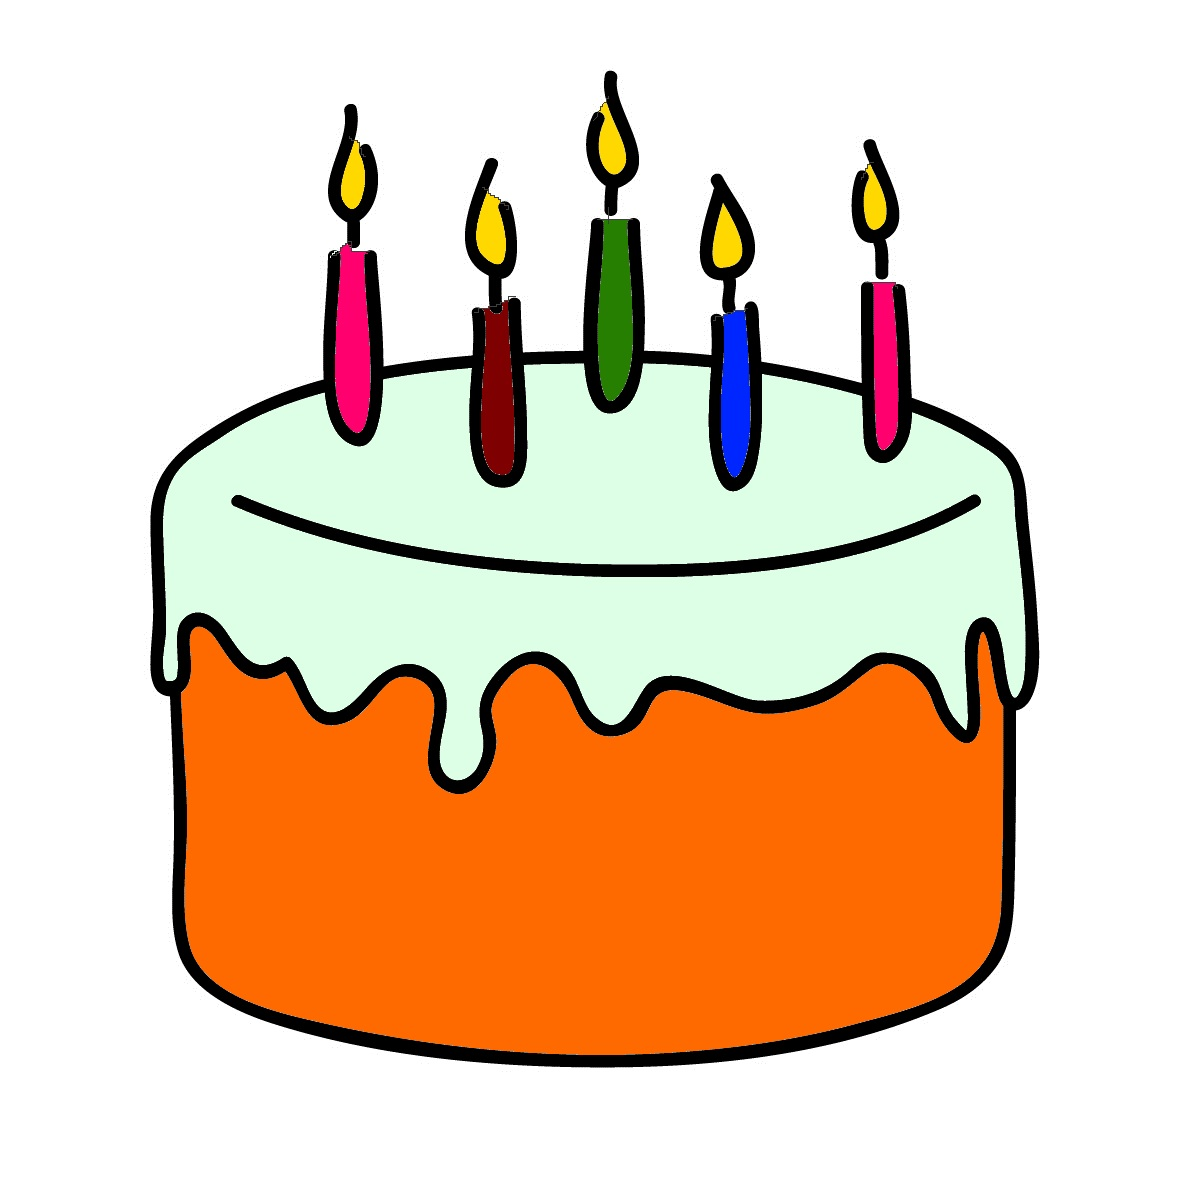 Birthday Cake Clipart Pie Candles HQ Photo